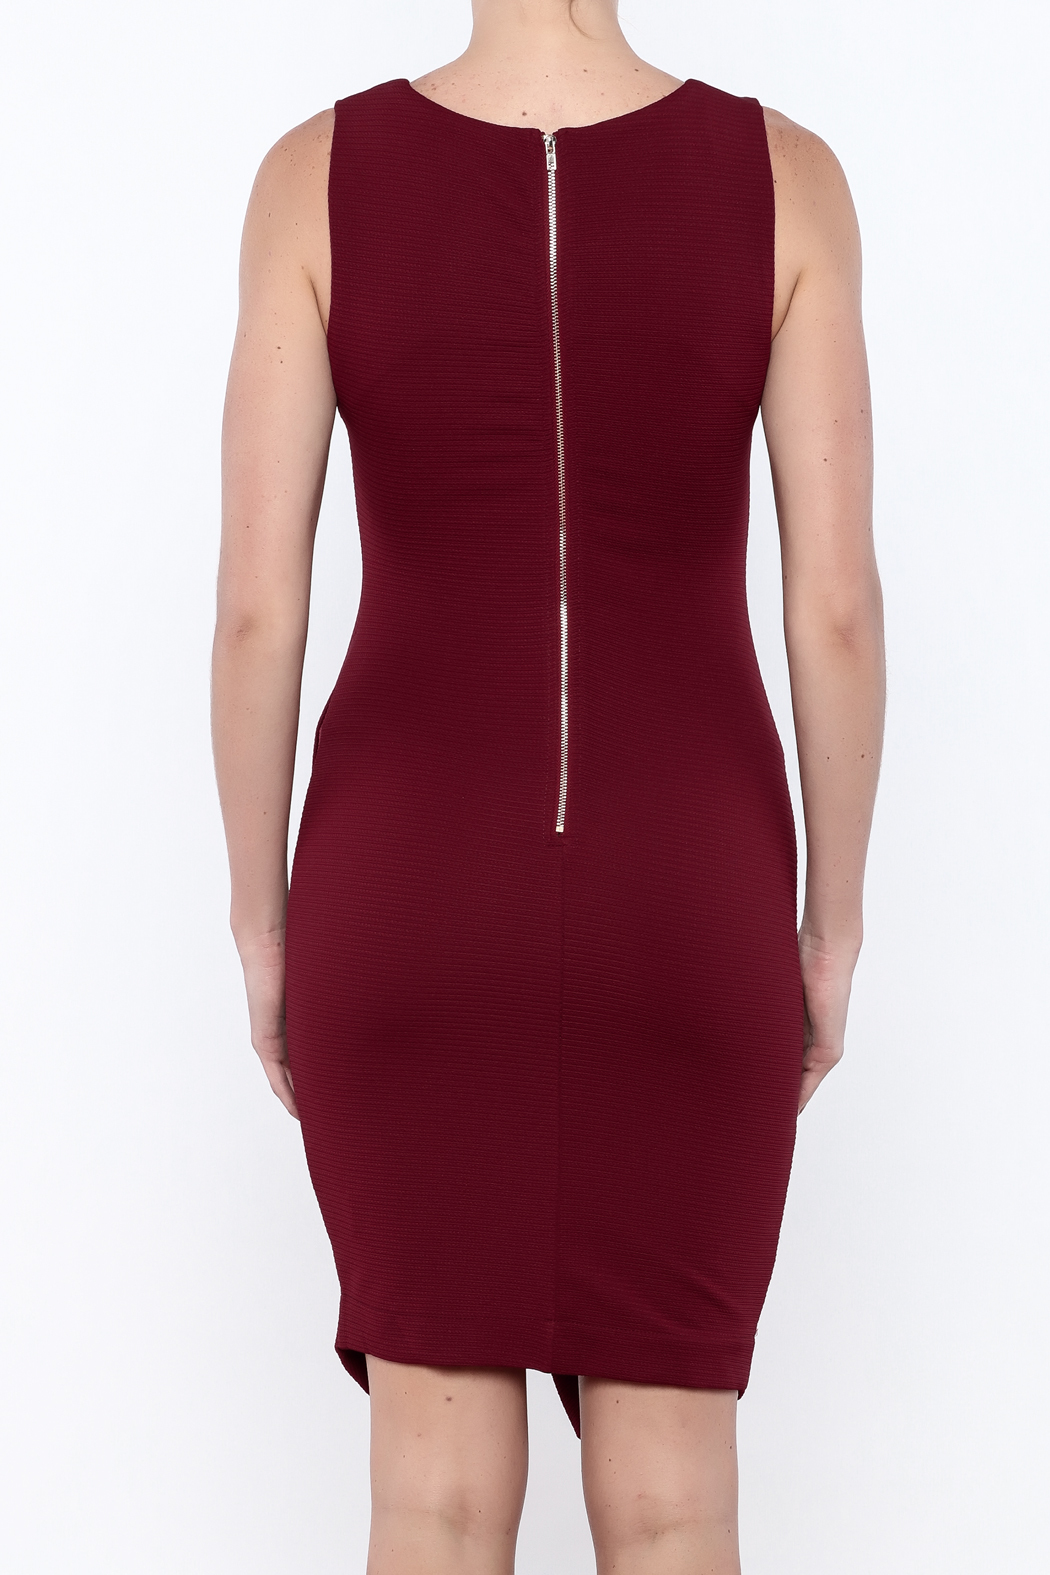 She + Sky Textured Bodycon Dress - Back Cropped Image